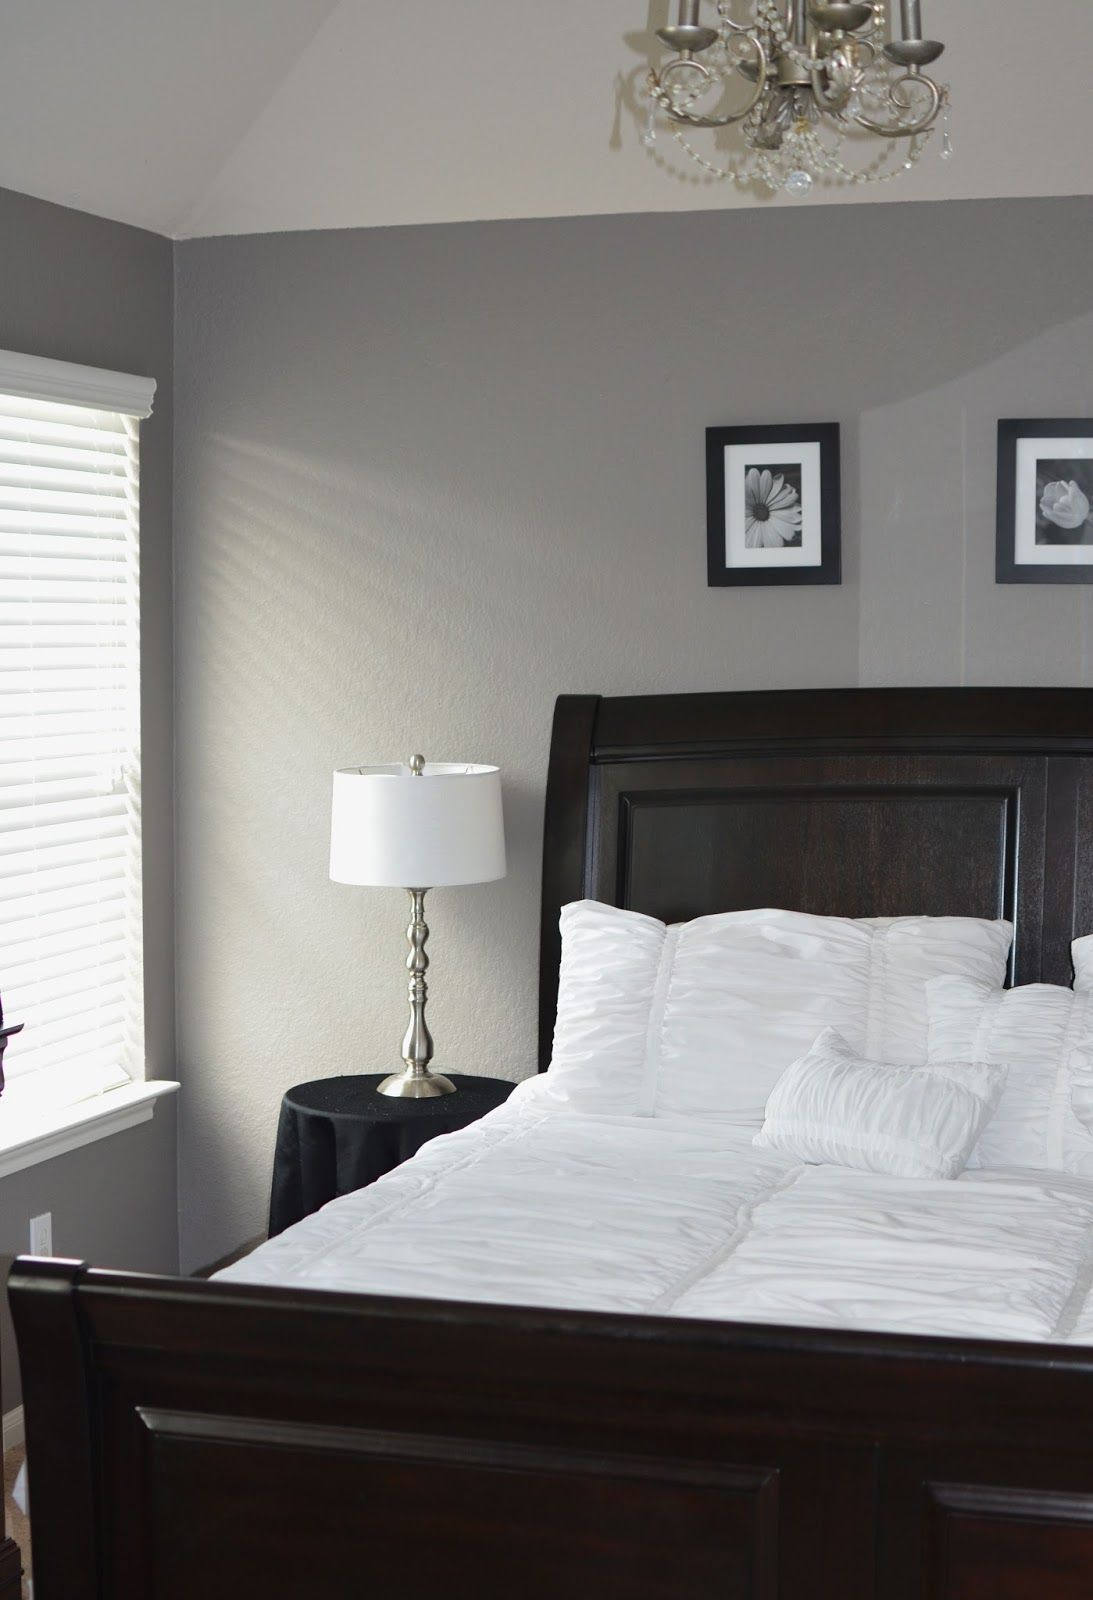 Bedroom Paint Ideas Grey Grey Master Bedroom. Behr Creek Bend. #grey #white #